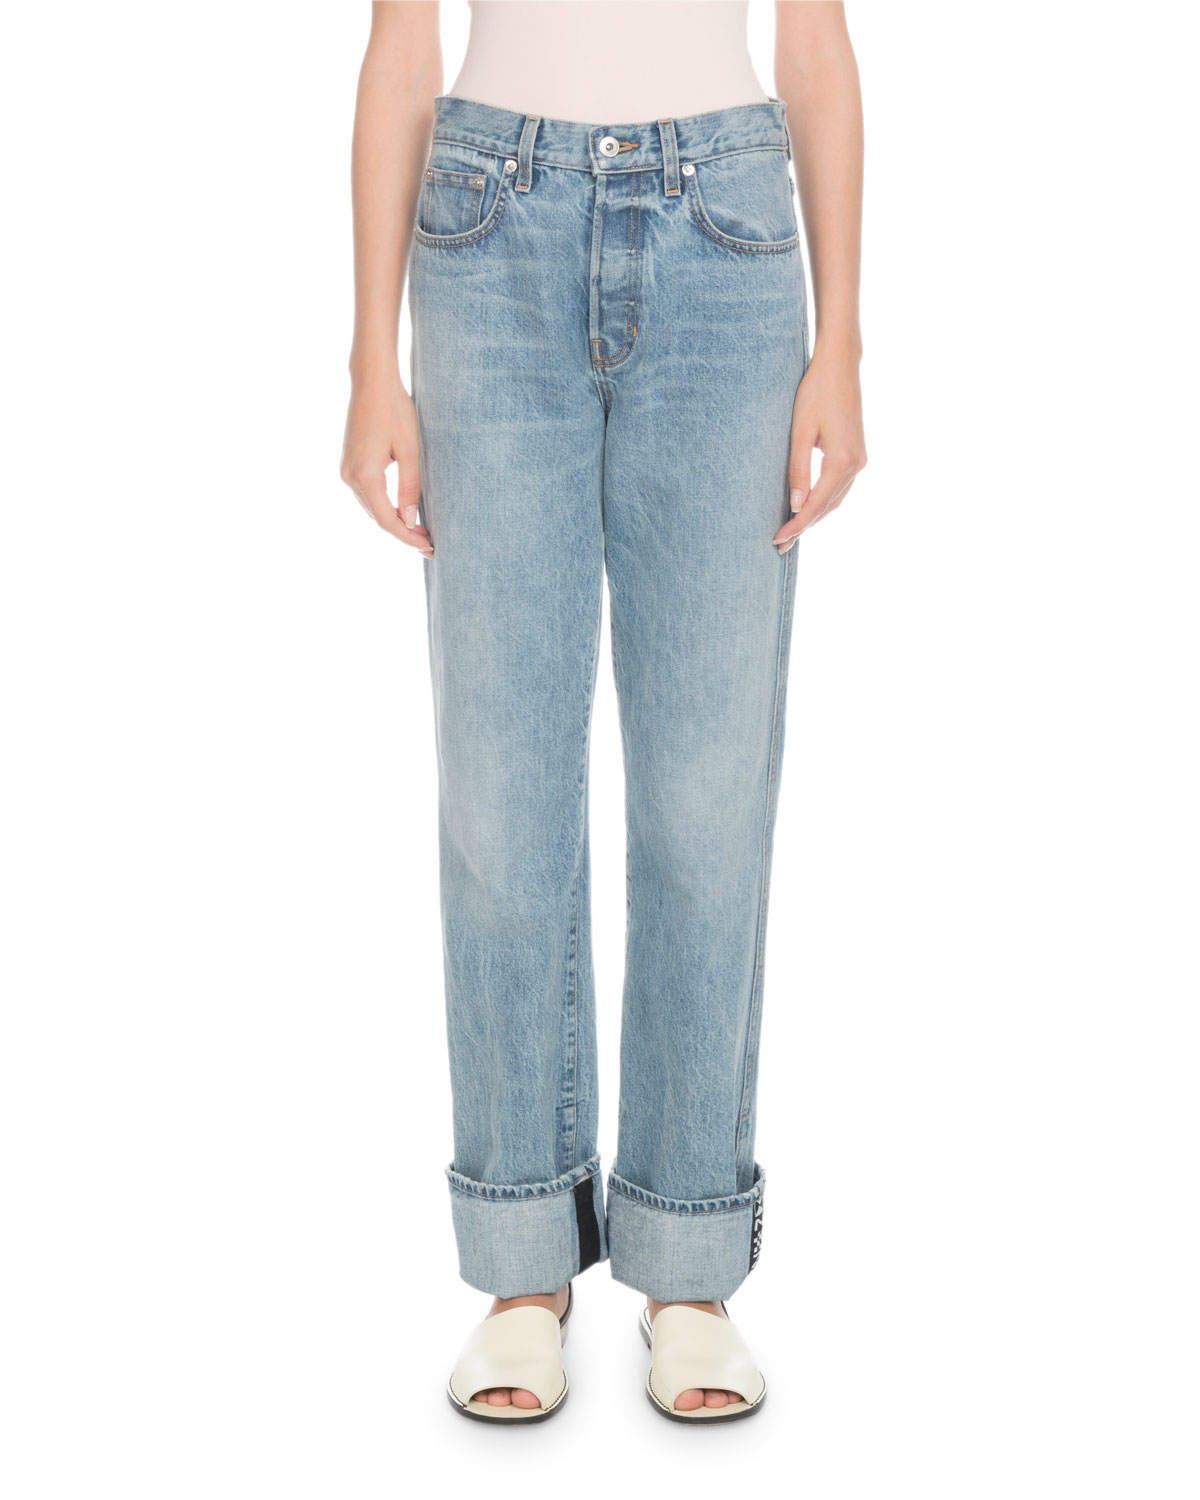 PSWL Rigid Cuffed Stovepipe Jeans in Blue